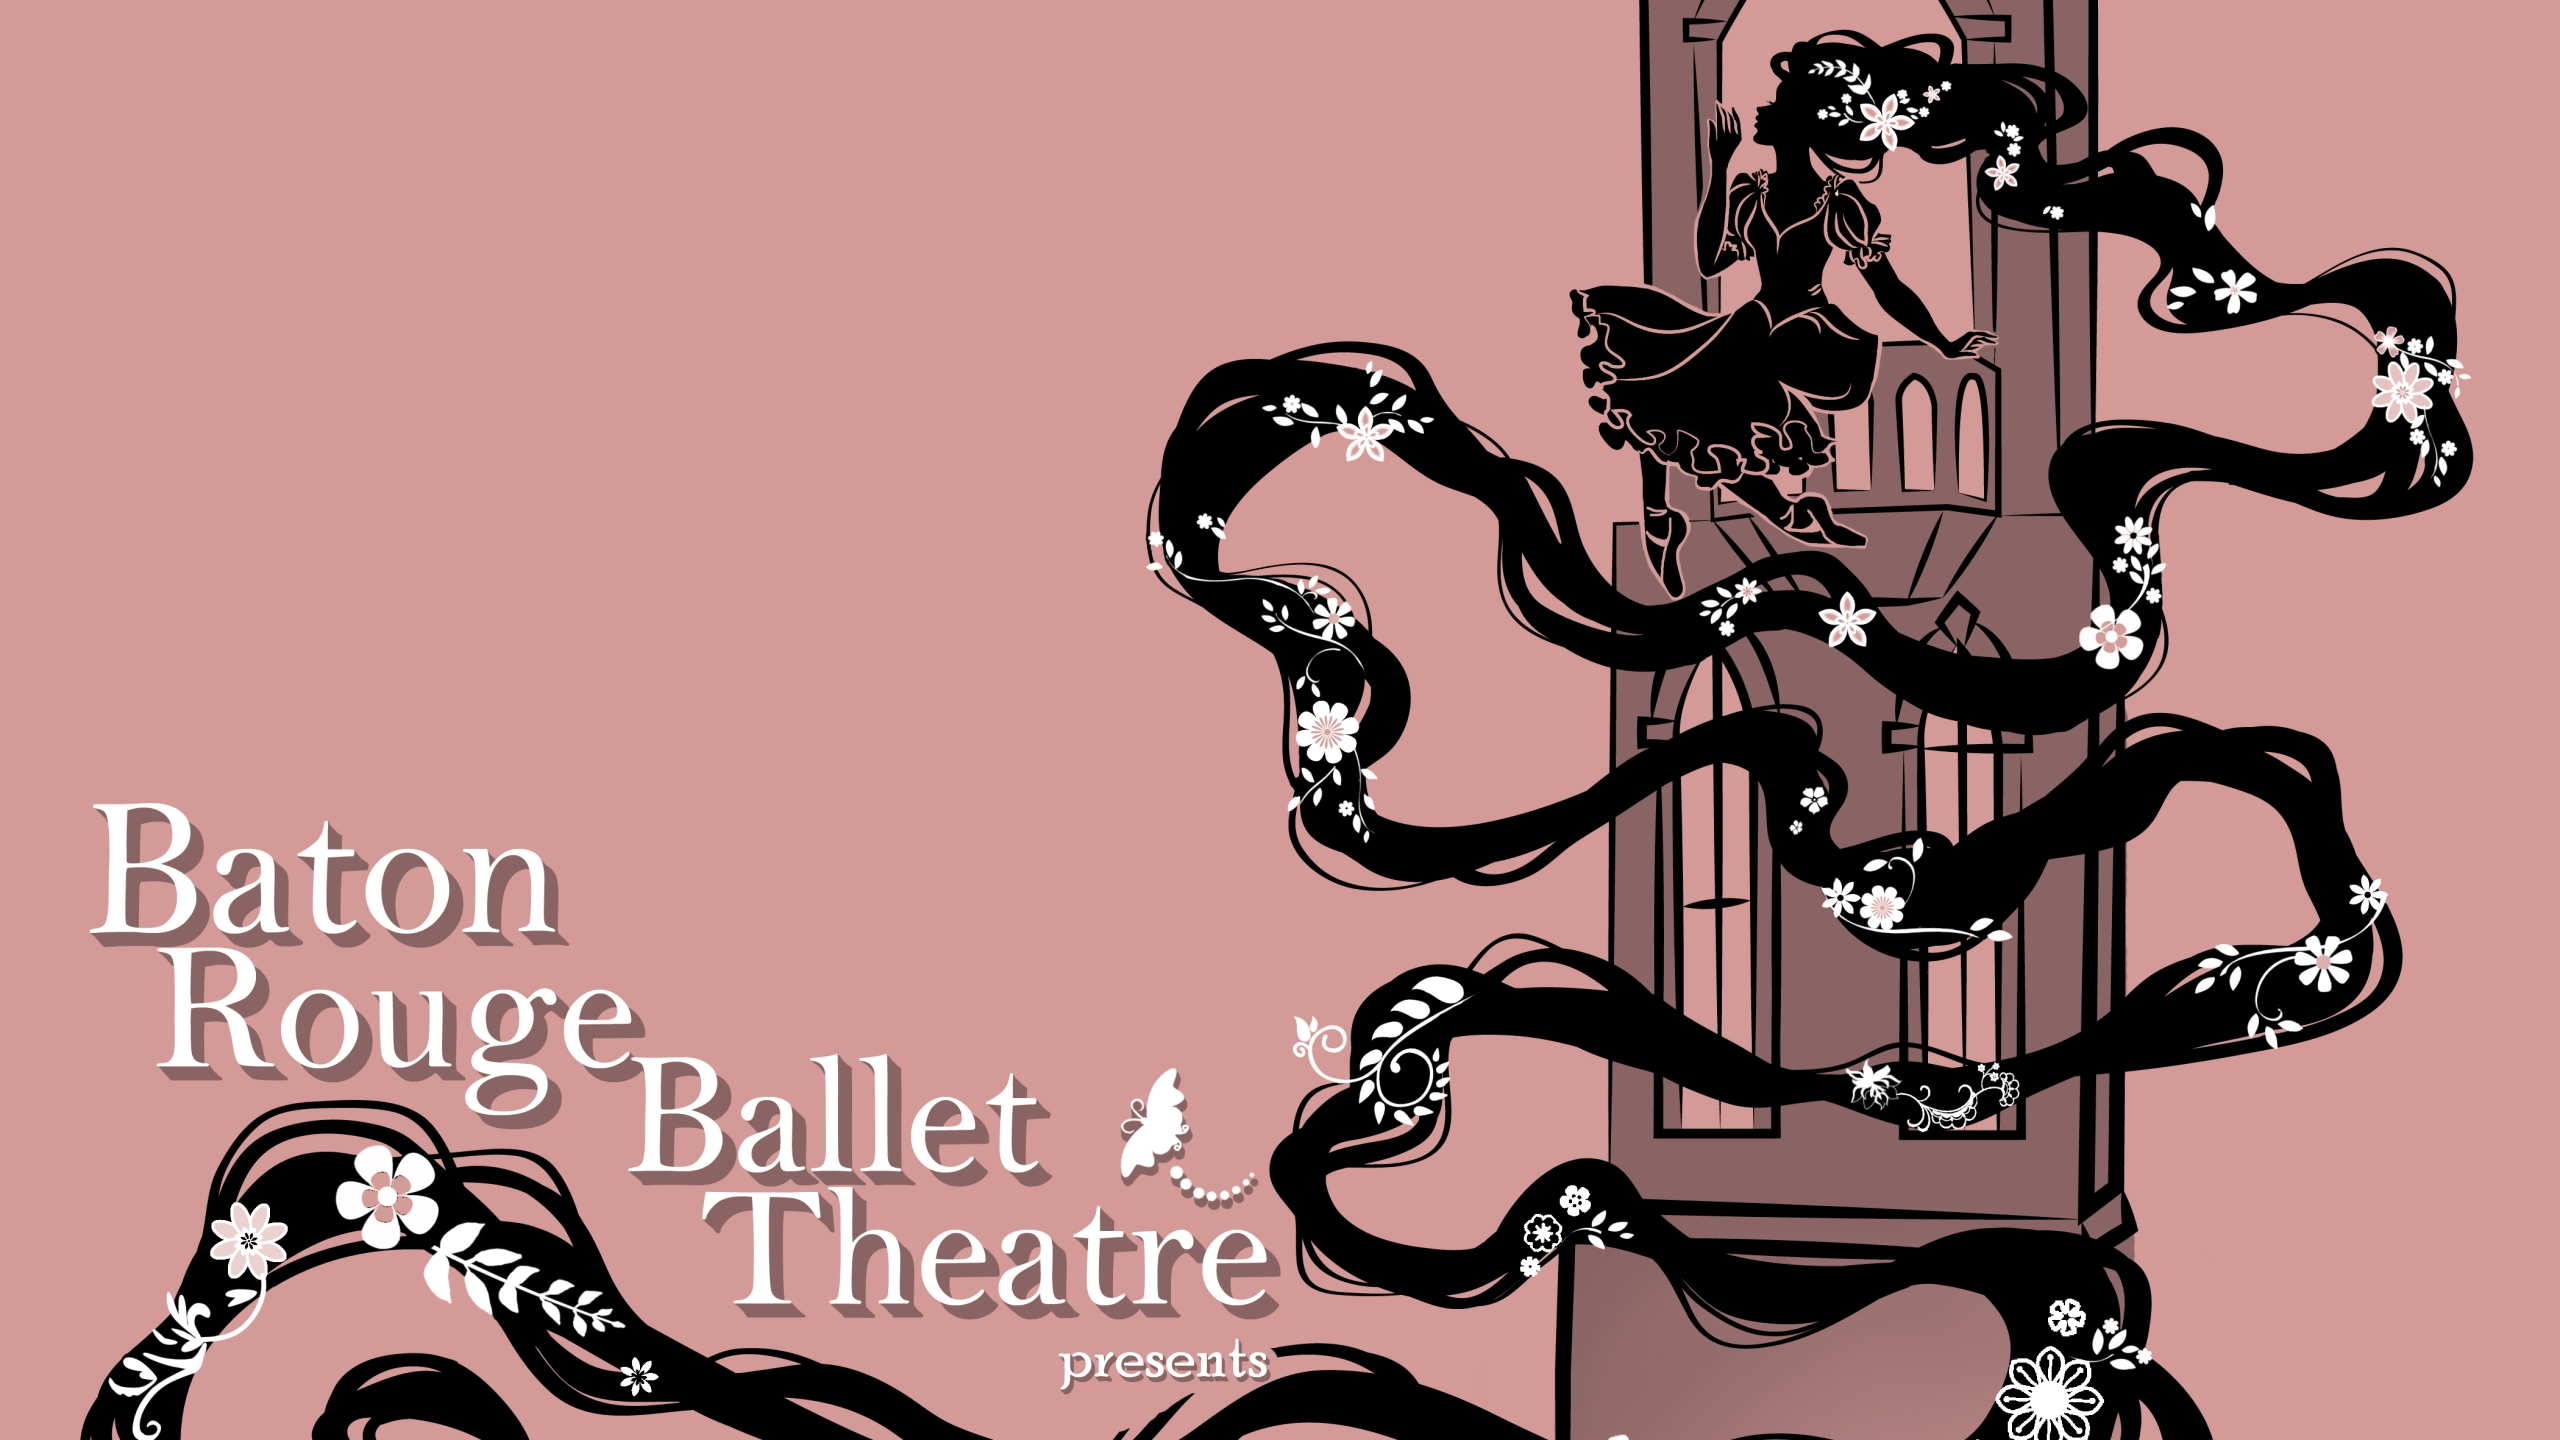 Baton Rouge Ballet Theatre To Present Rapunzel A Storybook